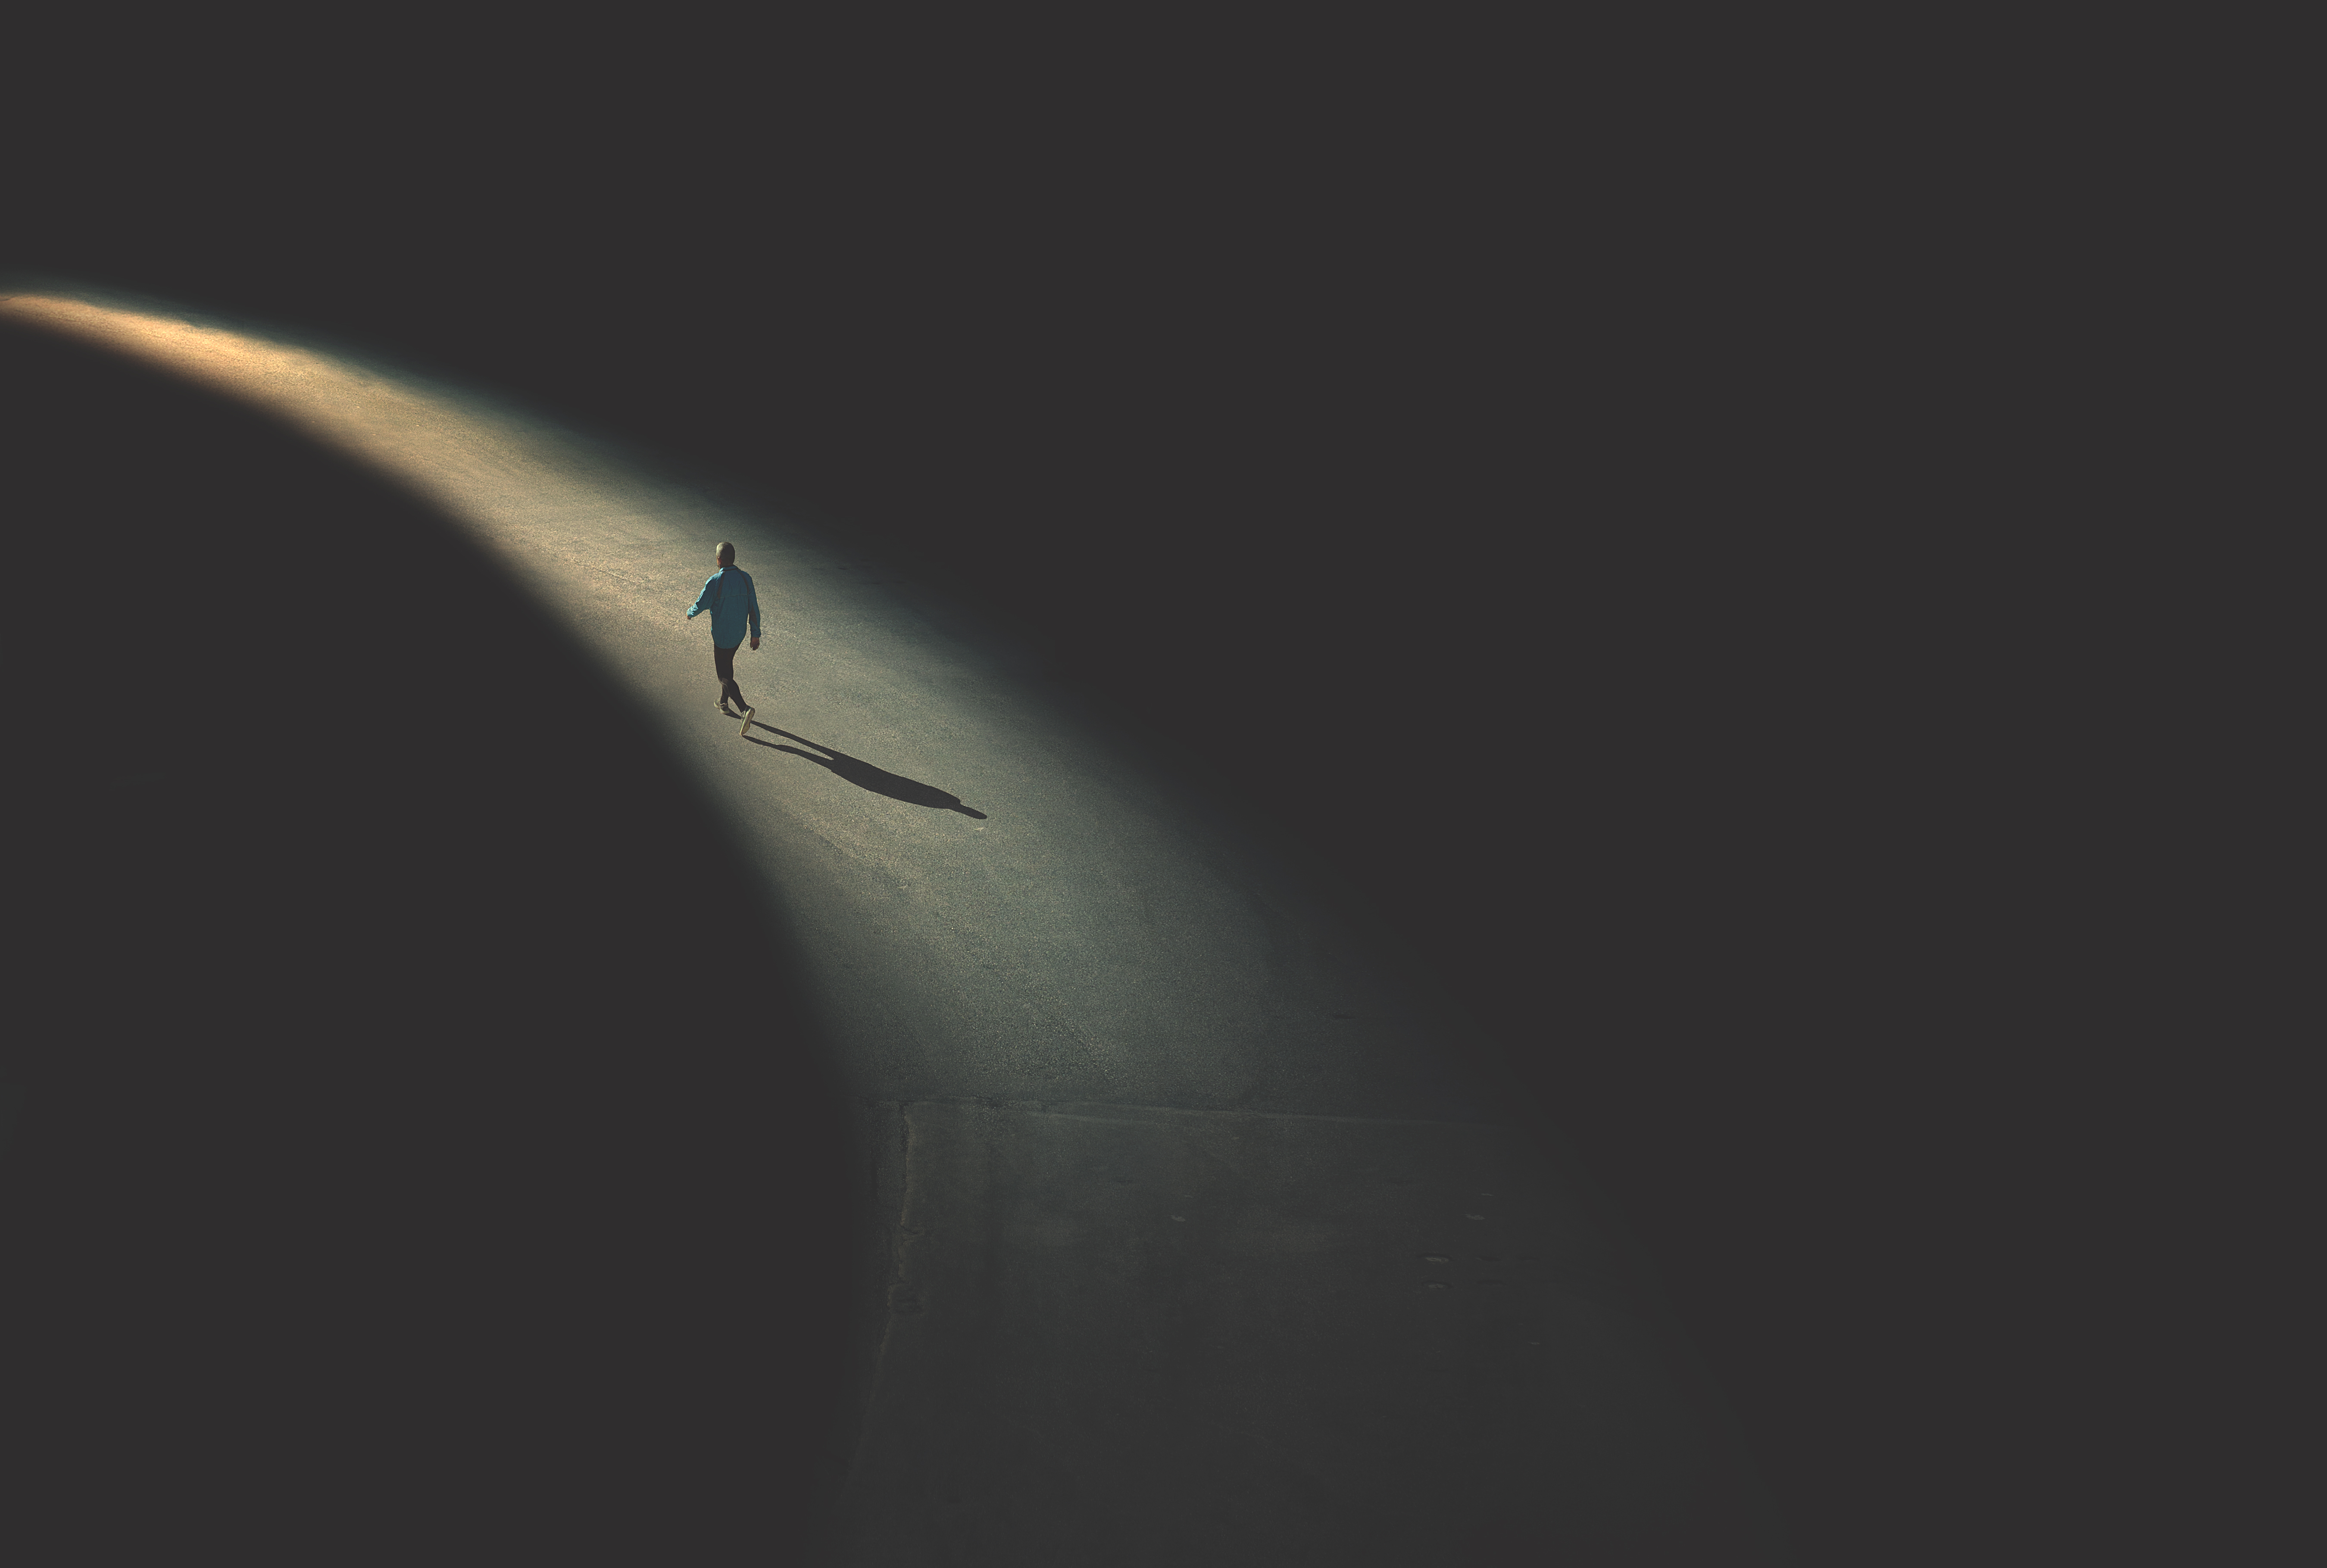 Illustration of single person walking on a path of light against a dark, foreboding background.